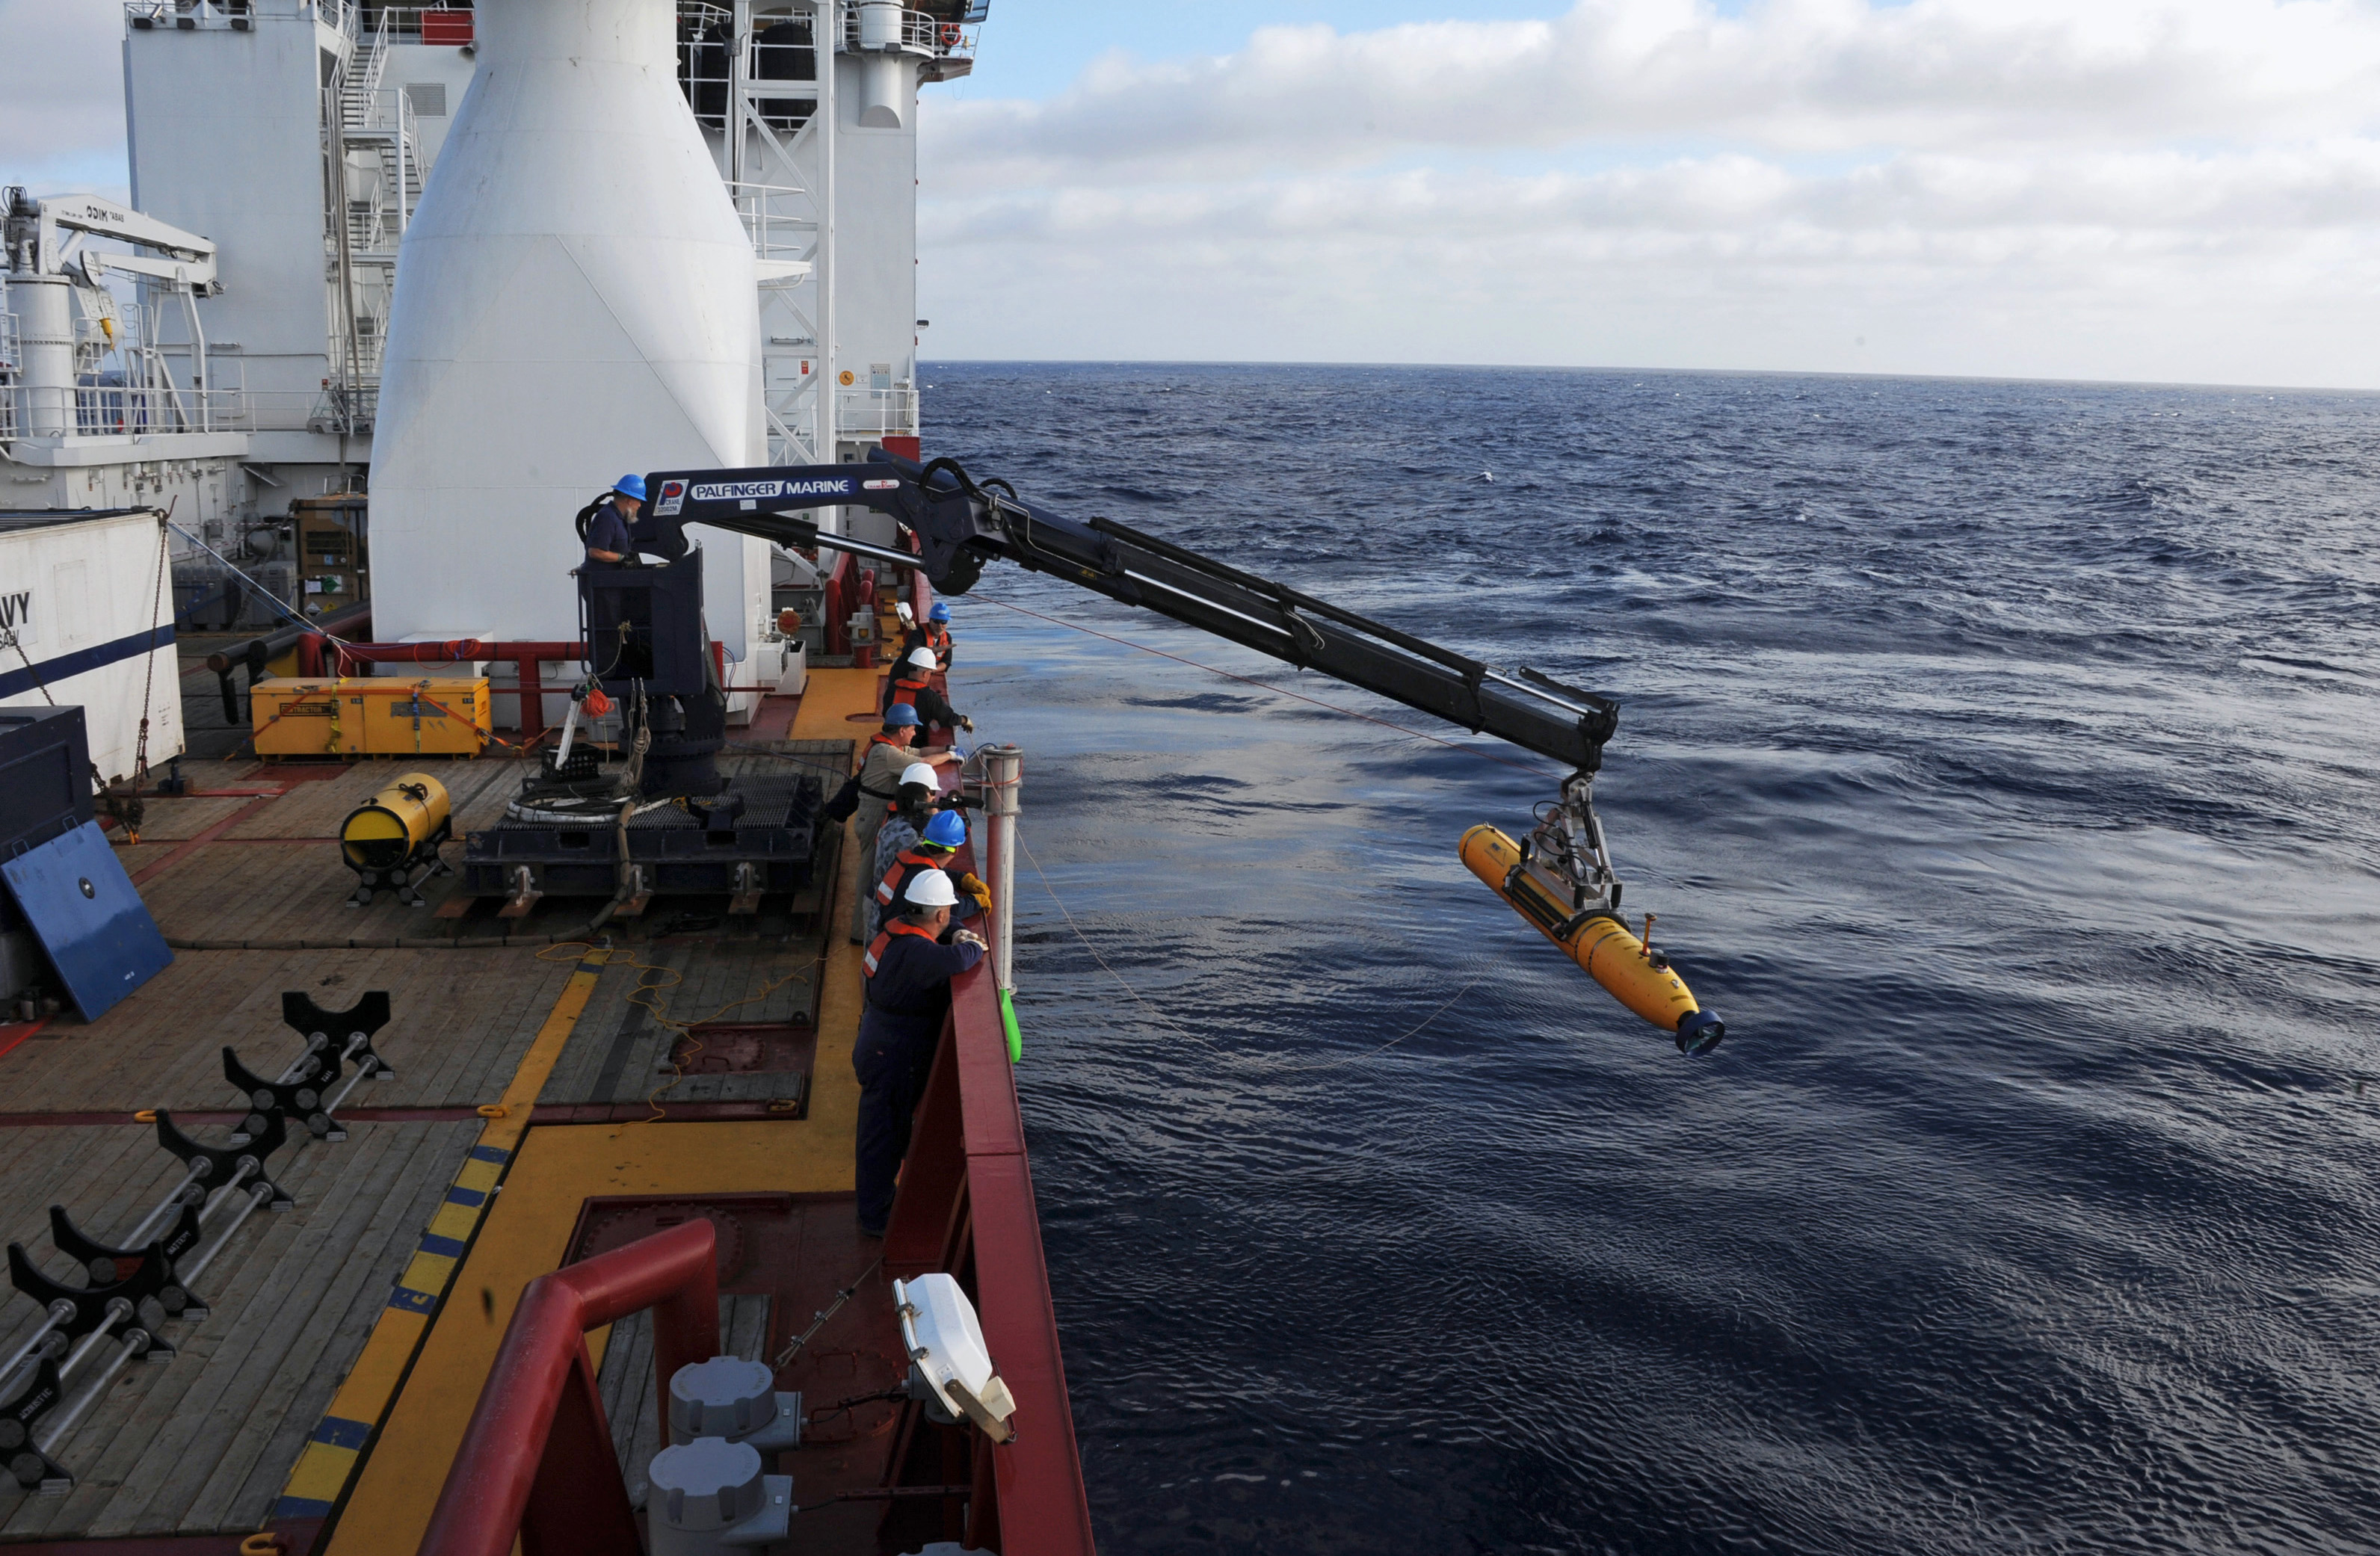 Crew aboard the Australian Defence Vessel Ocean Shield move the U.S. Navy's Bluefin-21 autonomous underwater vehicle into position for deployment in the southern Indian Ocean to look for the missing Malaysia Airlines flight MH370, April 14, 2014 in this handout picture released by the U.S. Navy.